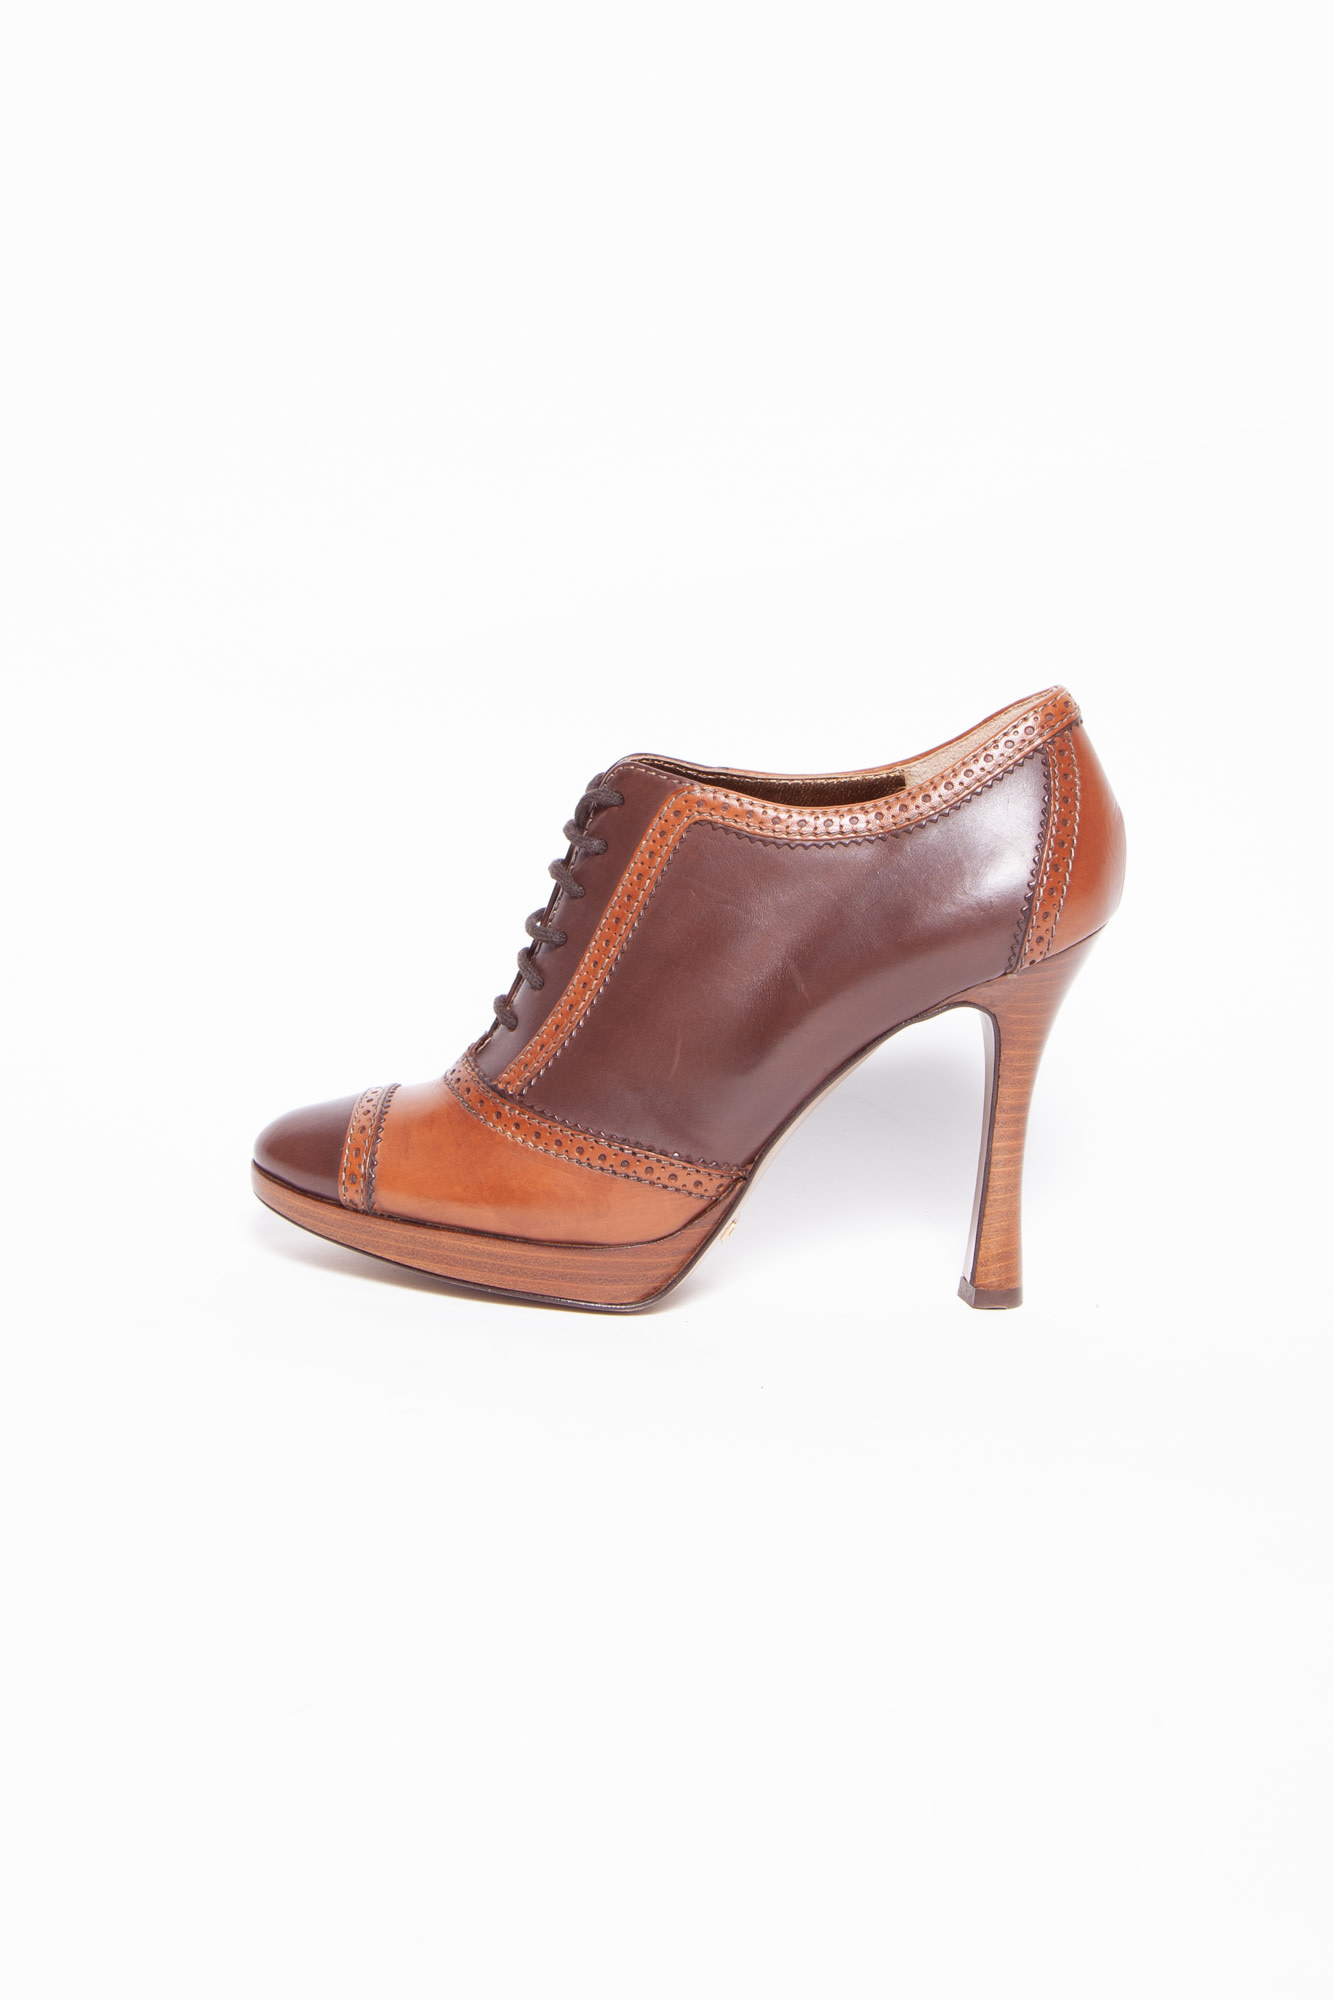 Dolce & Gabbana BROWN LEATHER PUMPS